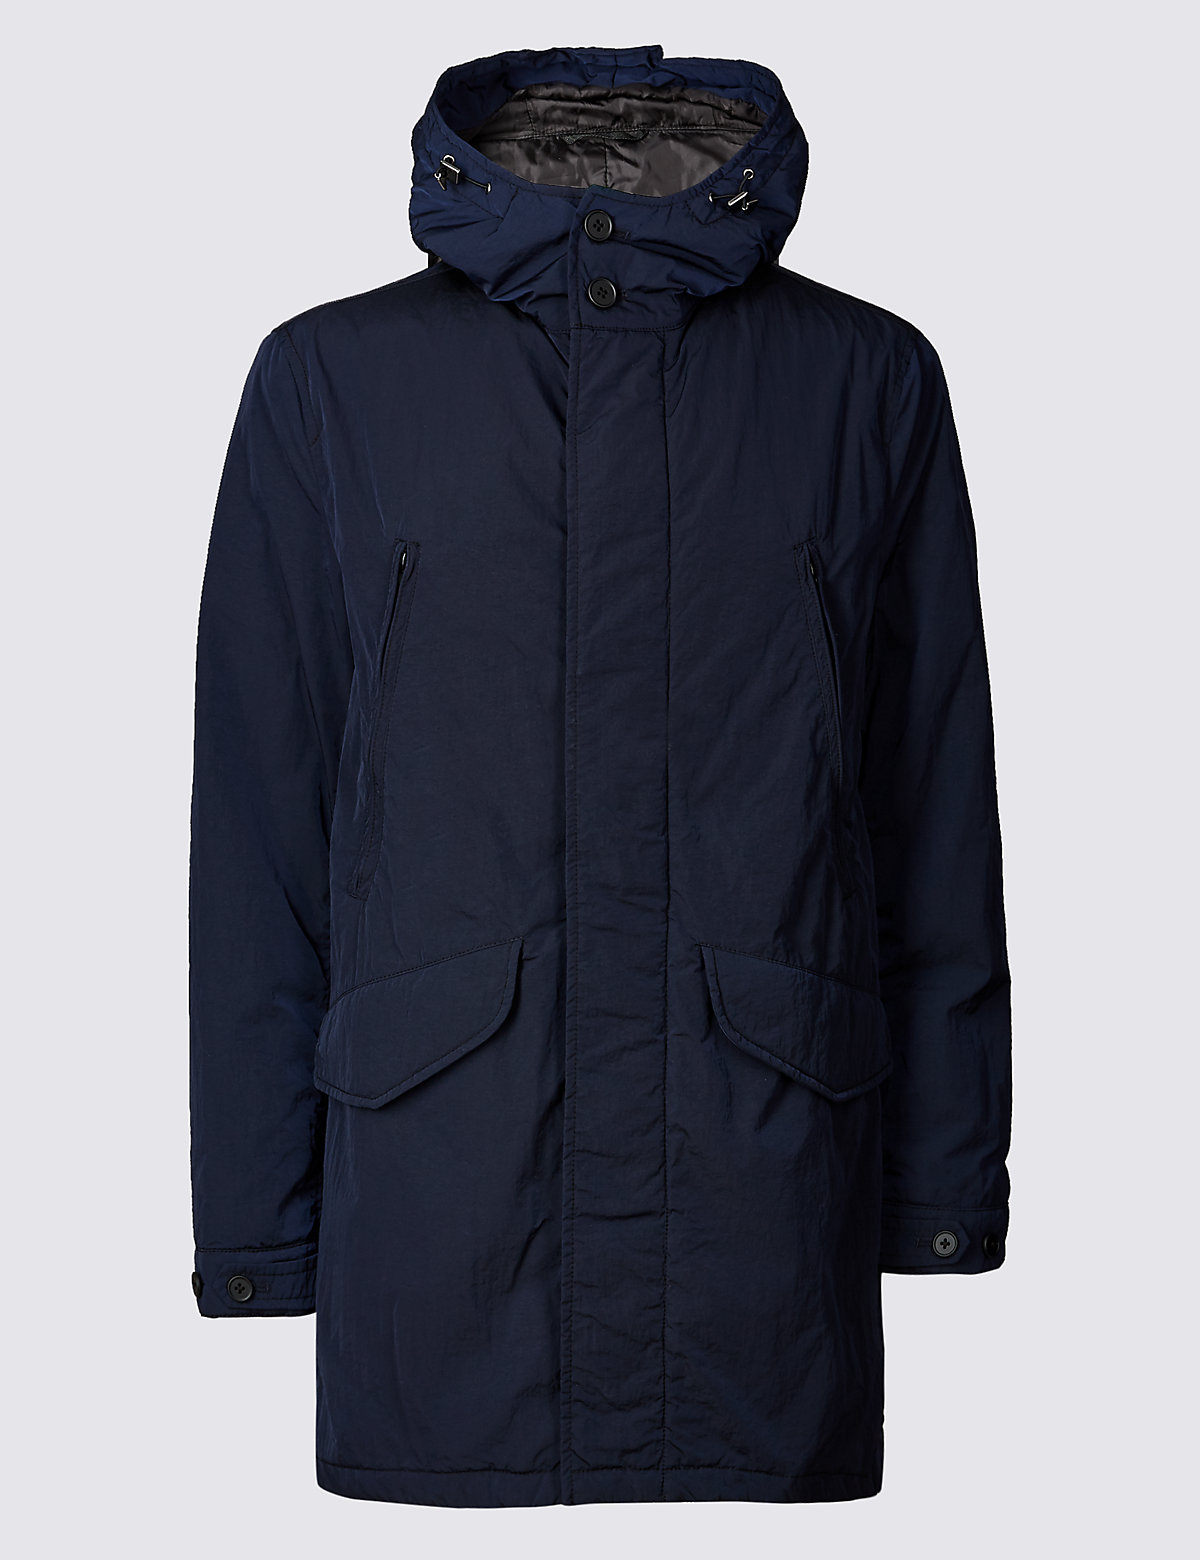 Marks & Spencer Navy Modern Parka with Stormwear™